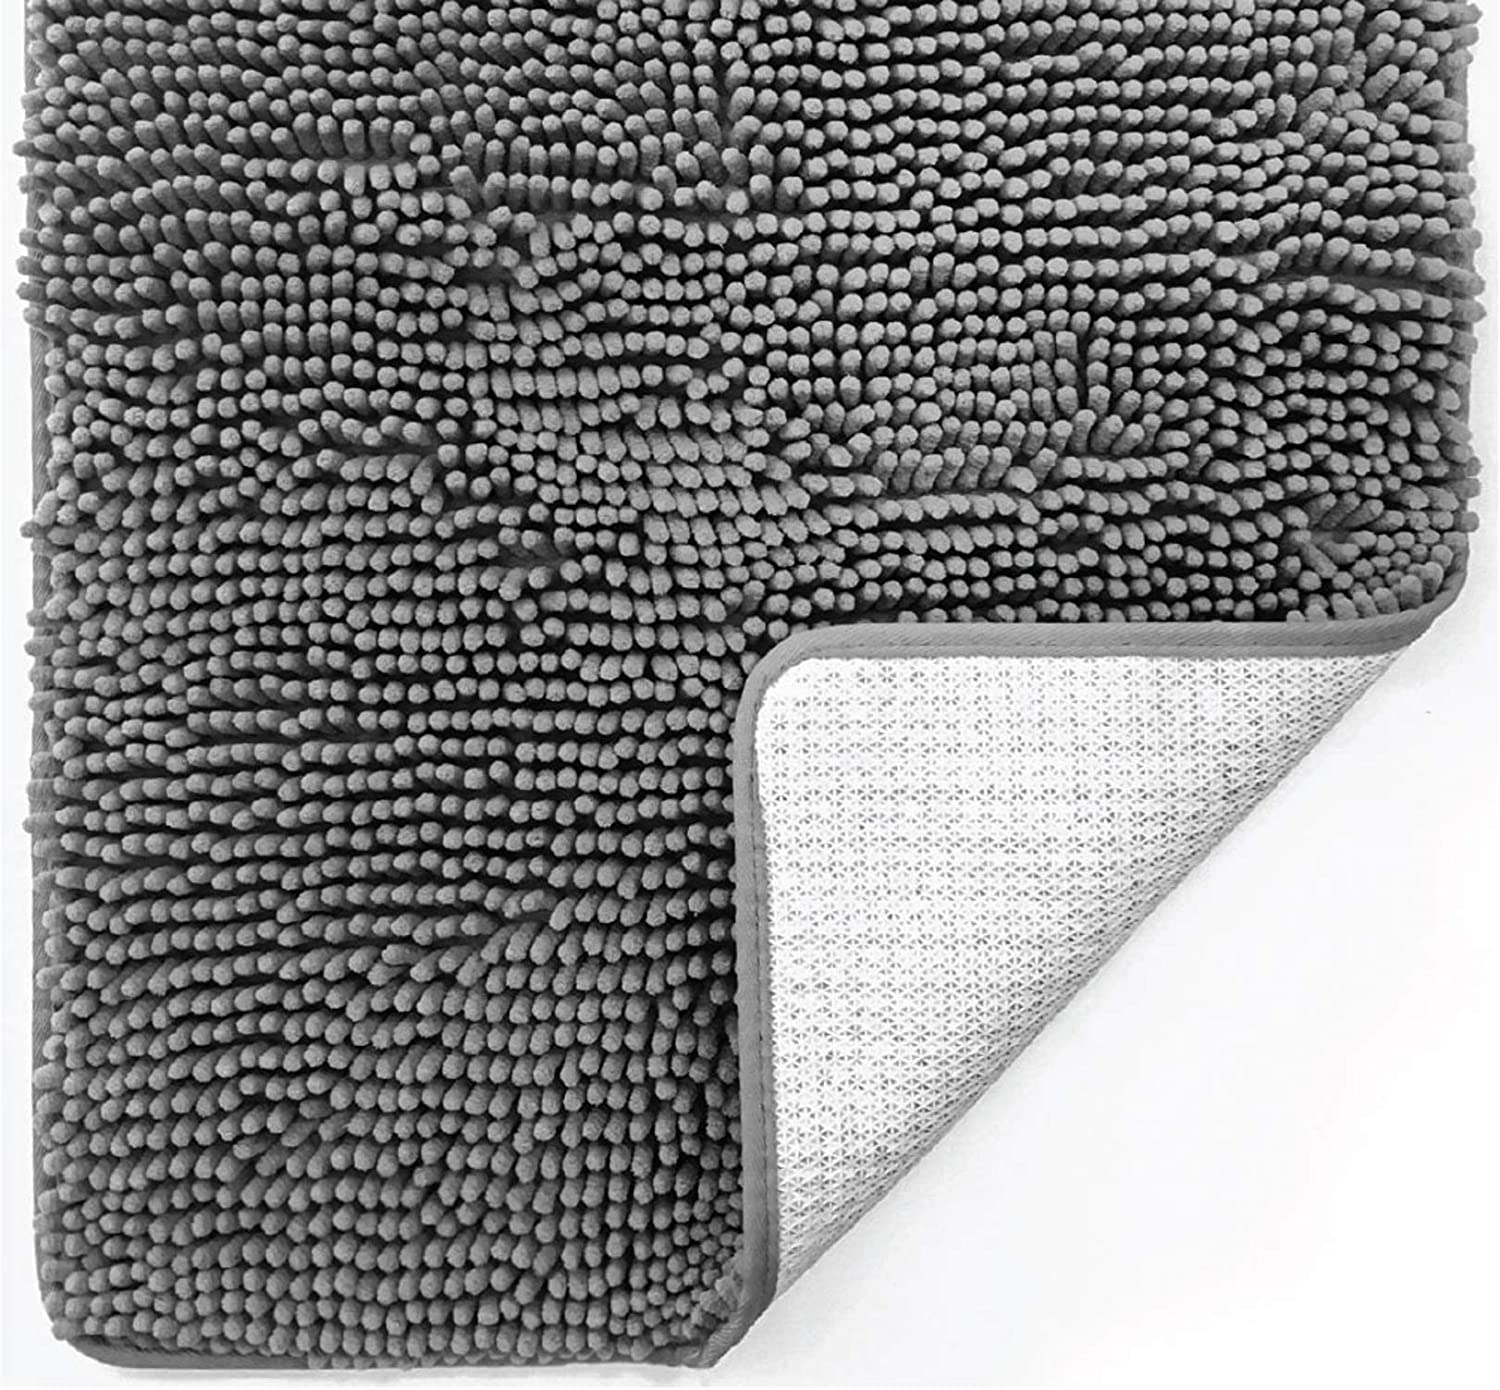 Gorilla Grip Original Luxury Chenille Bath Rug Mat, 42x24, Extra Soft and Absorbent Large Oval Shaggy Bathroom Rugs, Machine Wash Dry, Plush Carpet Mats for Tub, Shower, and Bath Room, Emerald